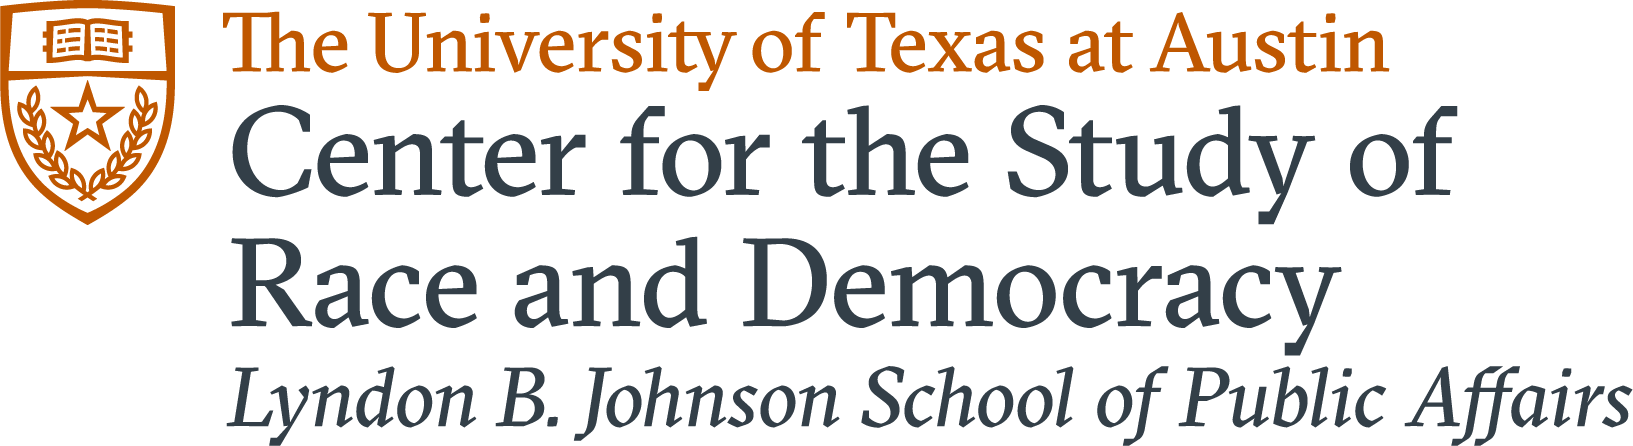 Center for the Study of Race and Democracy logo